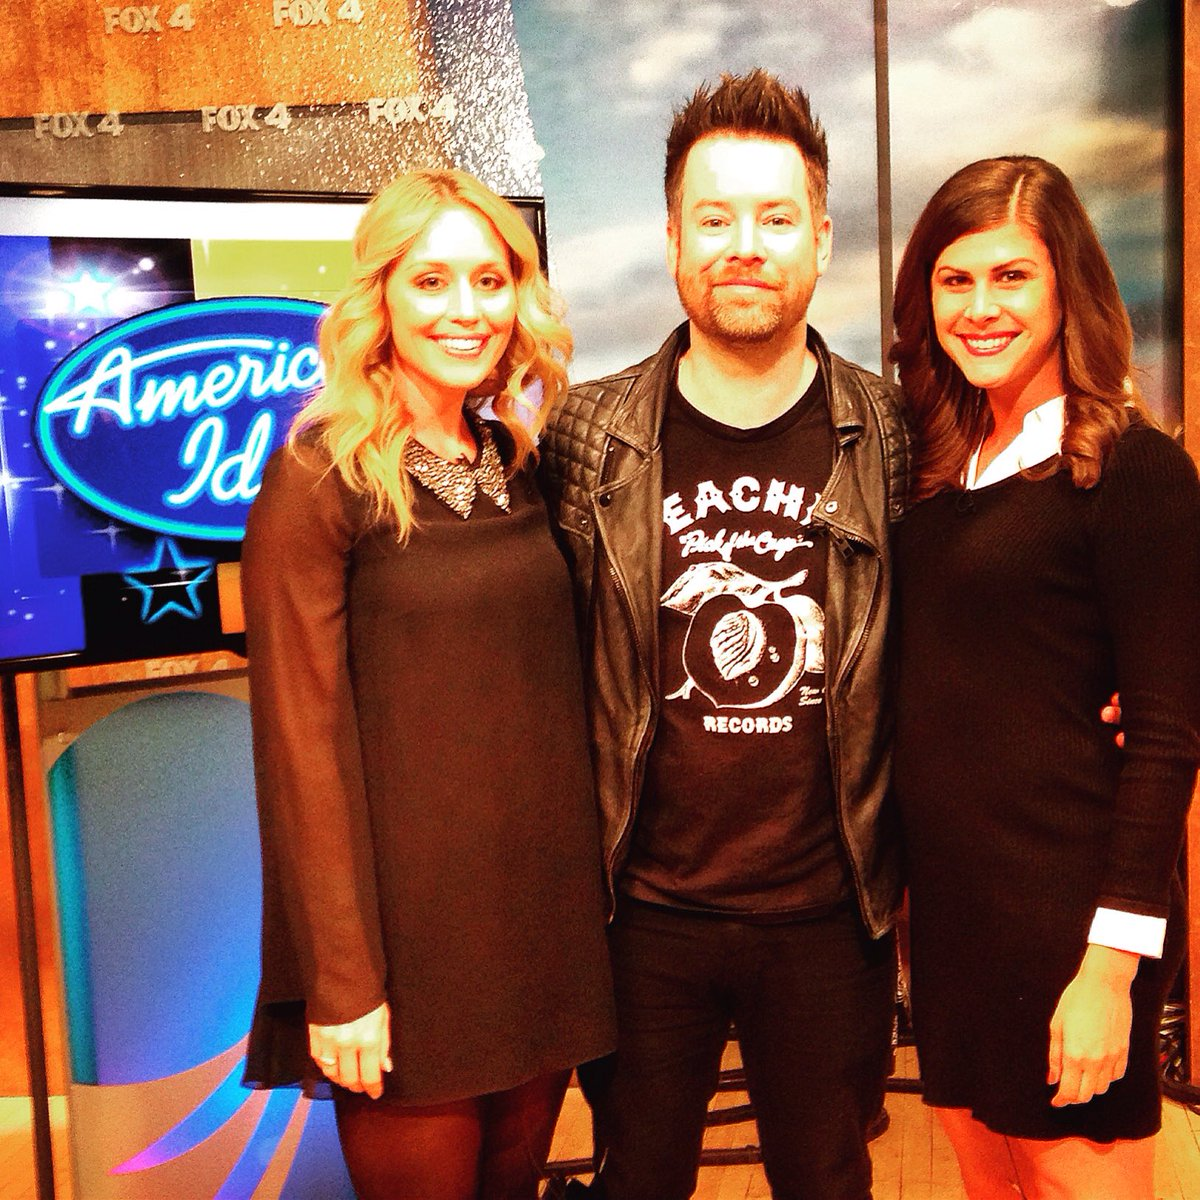 Great meeting you @thedavidcook Thanks for stopping by @fox4kc this morning! https://t.co/fcPkielyk6